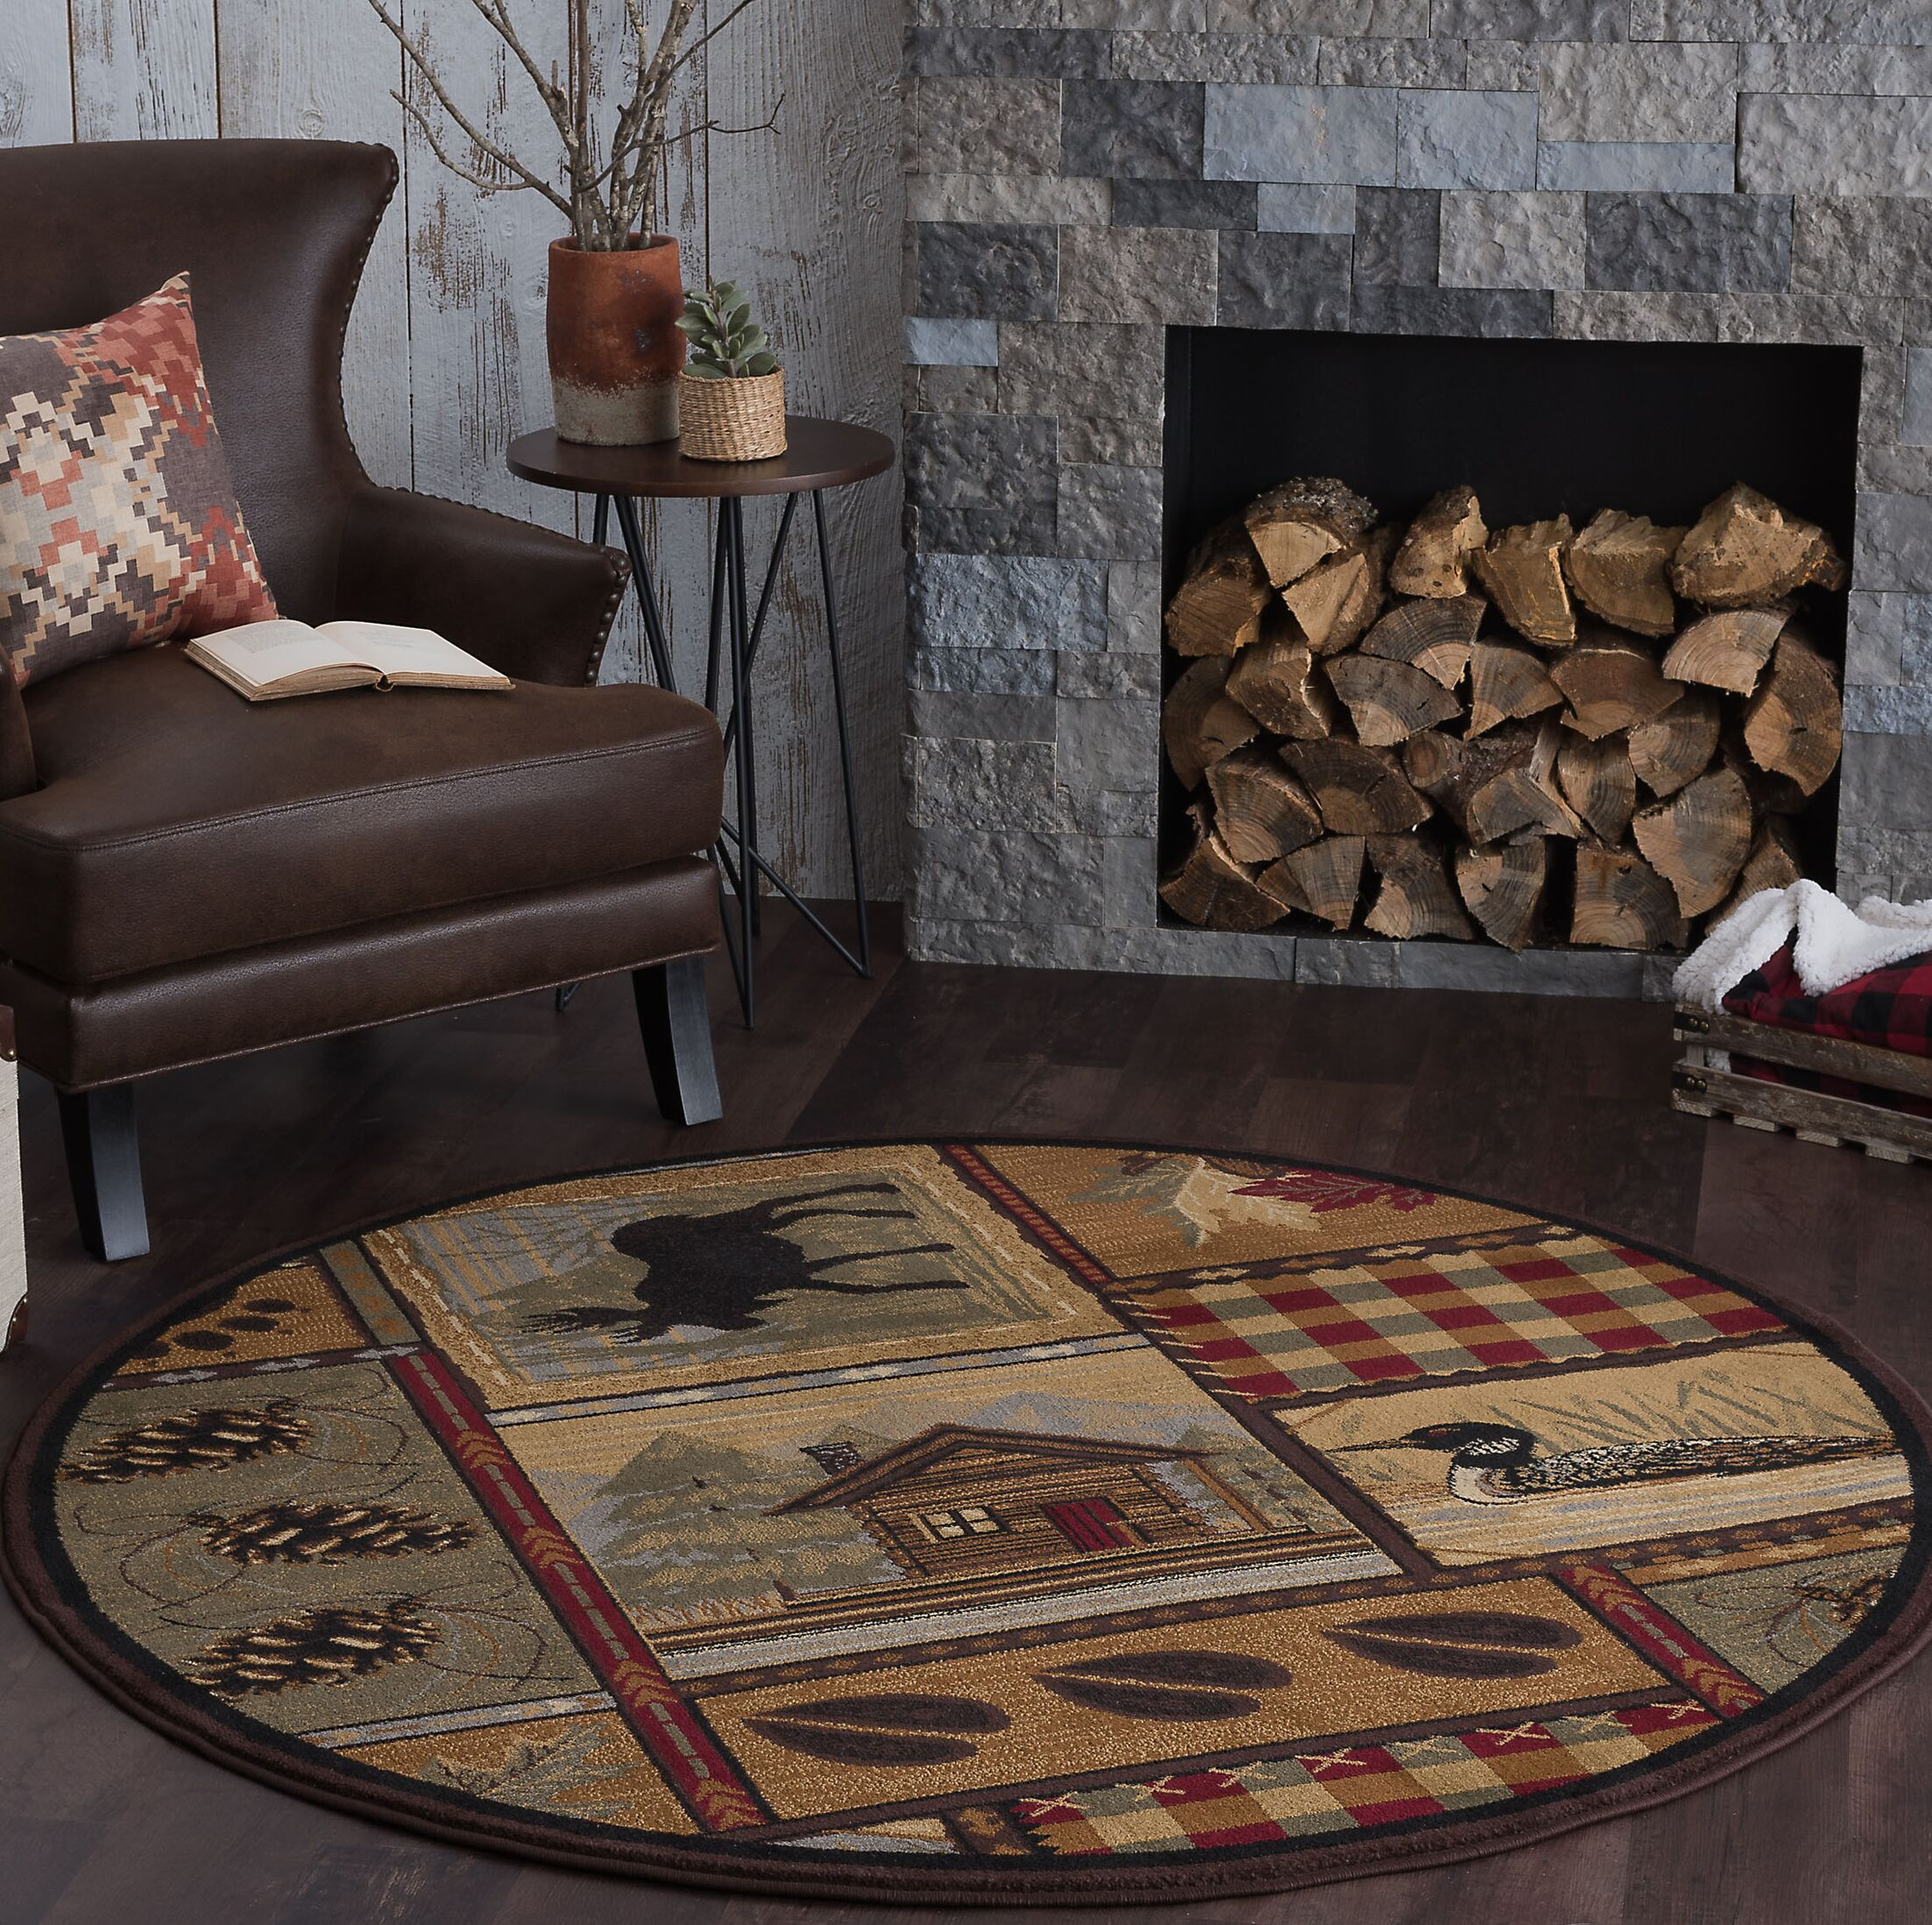 Alers Brown Area Rug Rug Size: 7'10'' Round